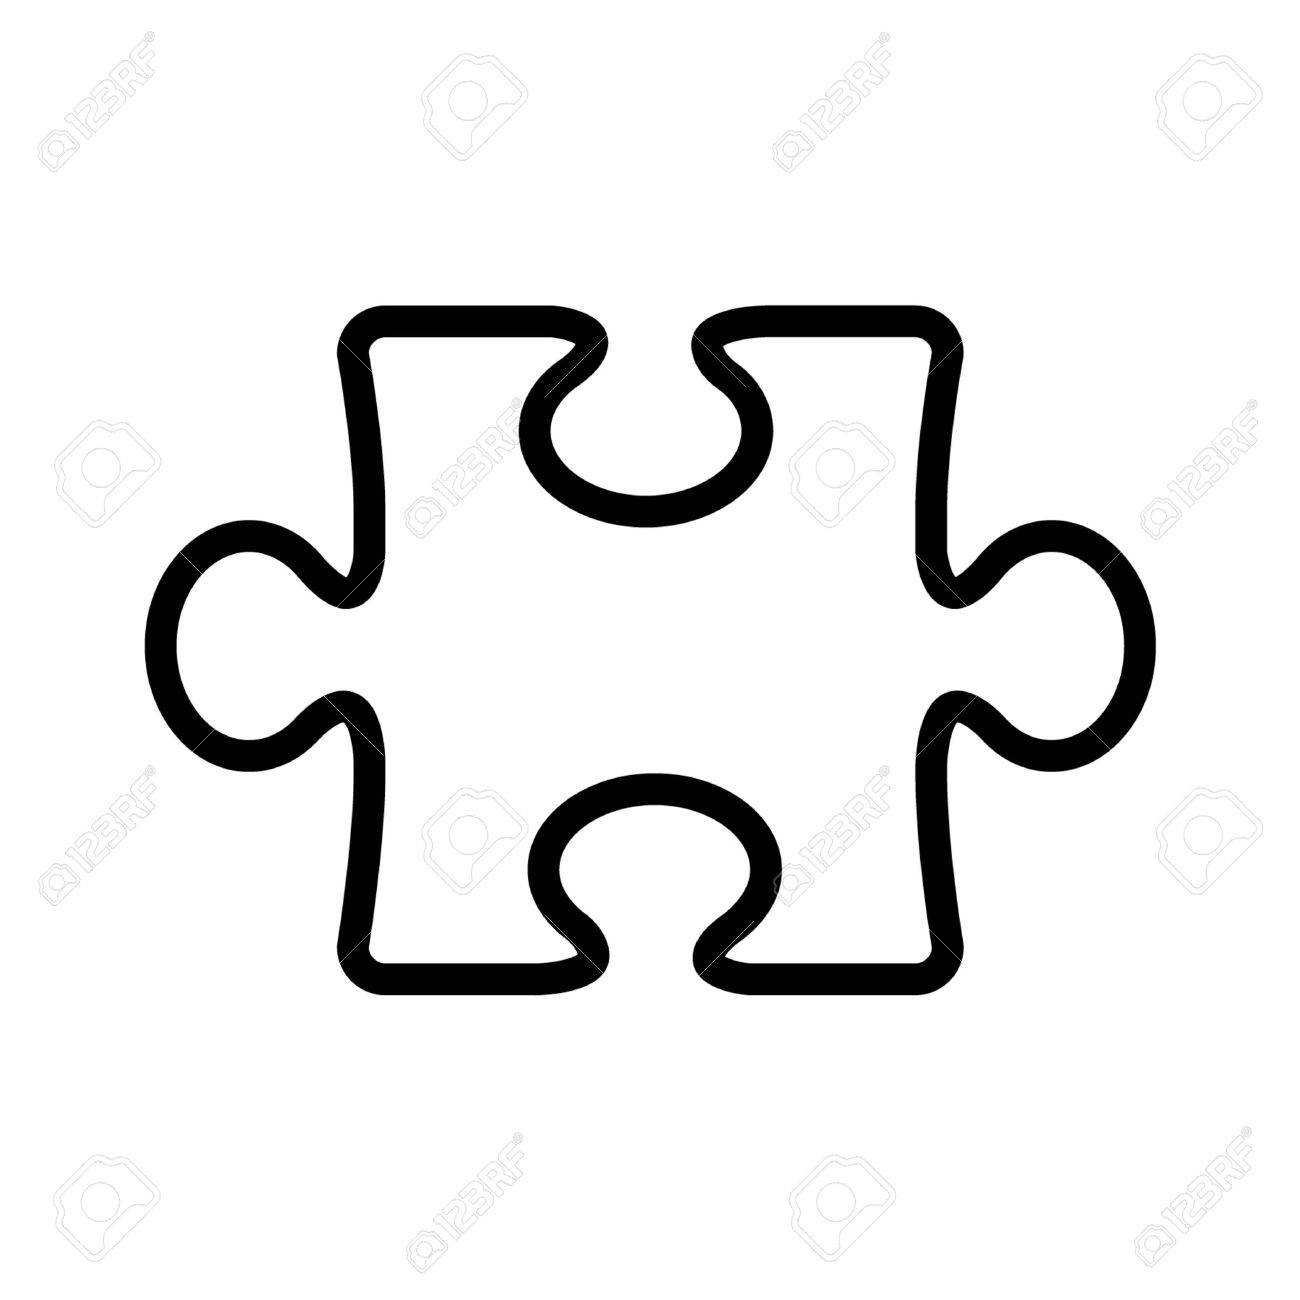 Puzzle piece line art icon for apps and websites.